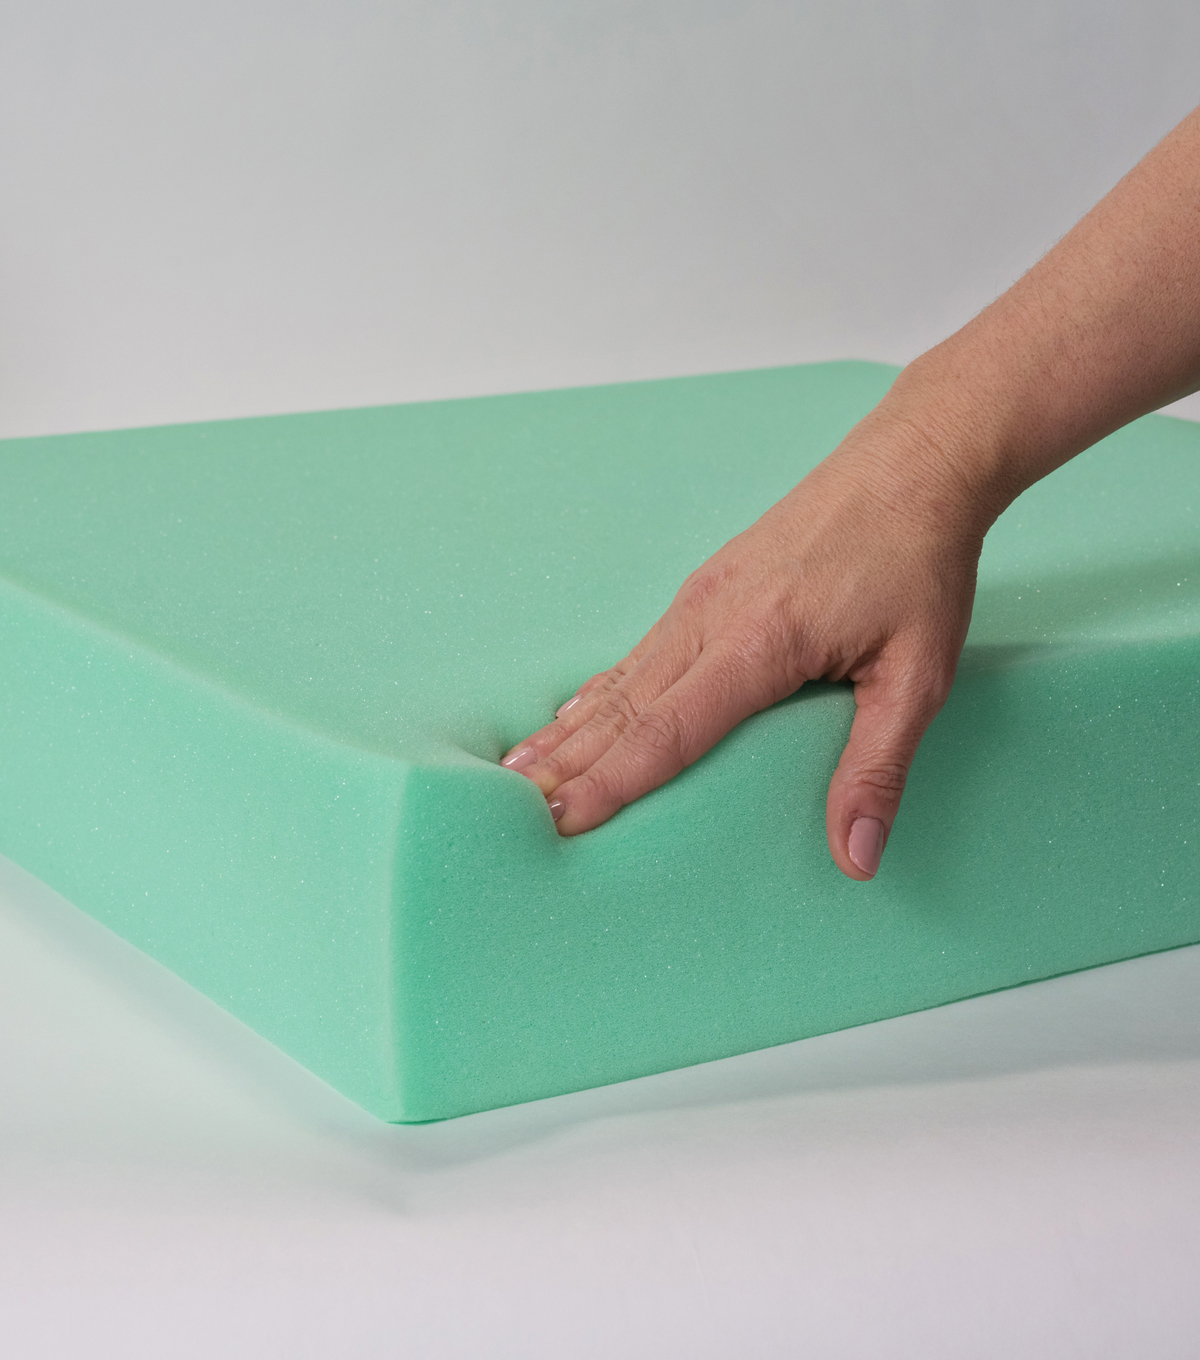 5 Inch High Density Foam | Buy Cushion Foam Online | High Density Upholstery Foam